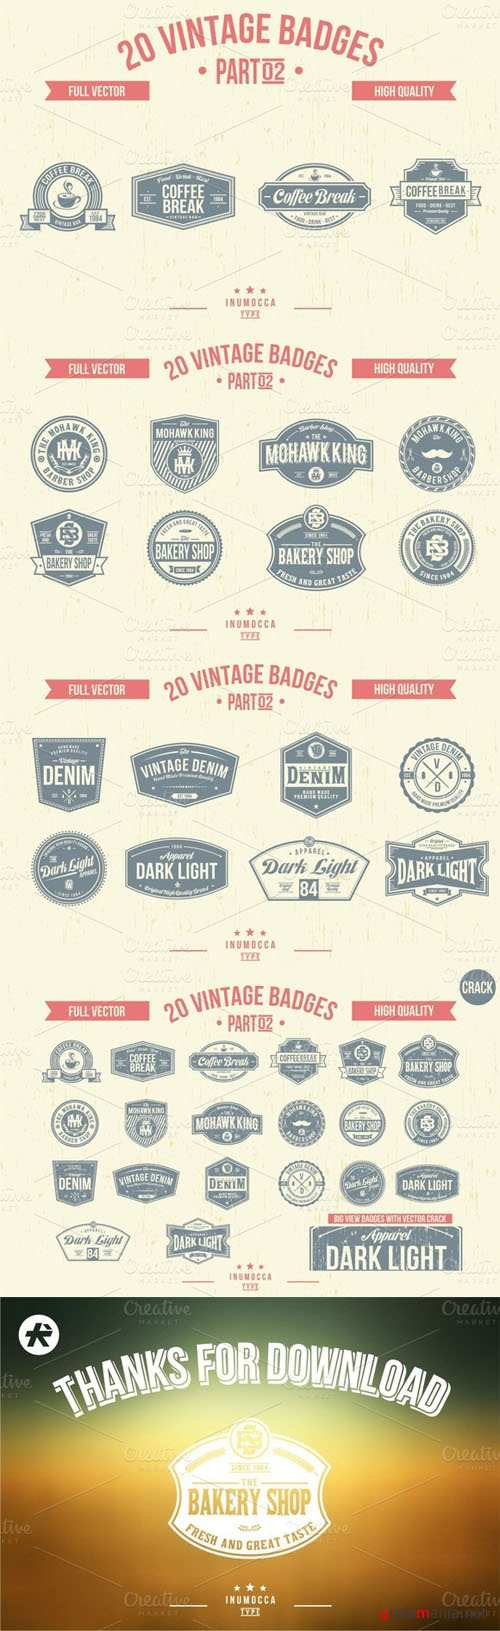 2O Vintage Badges (CLEAR & CRACK) 02 - CM 15730